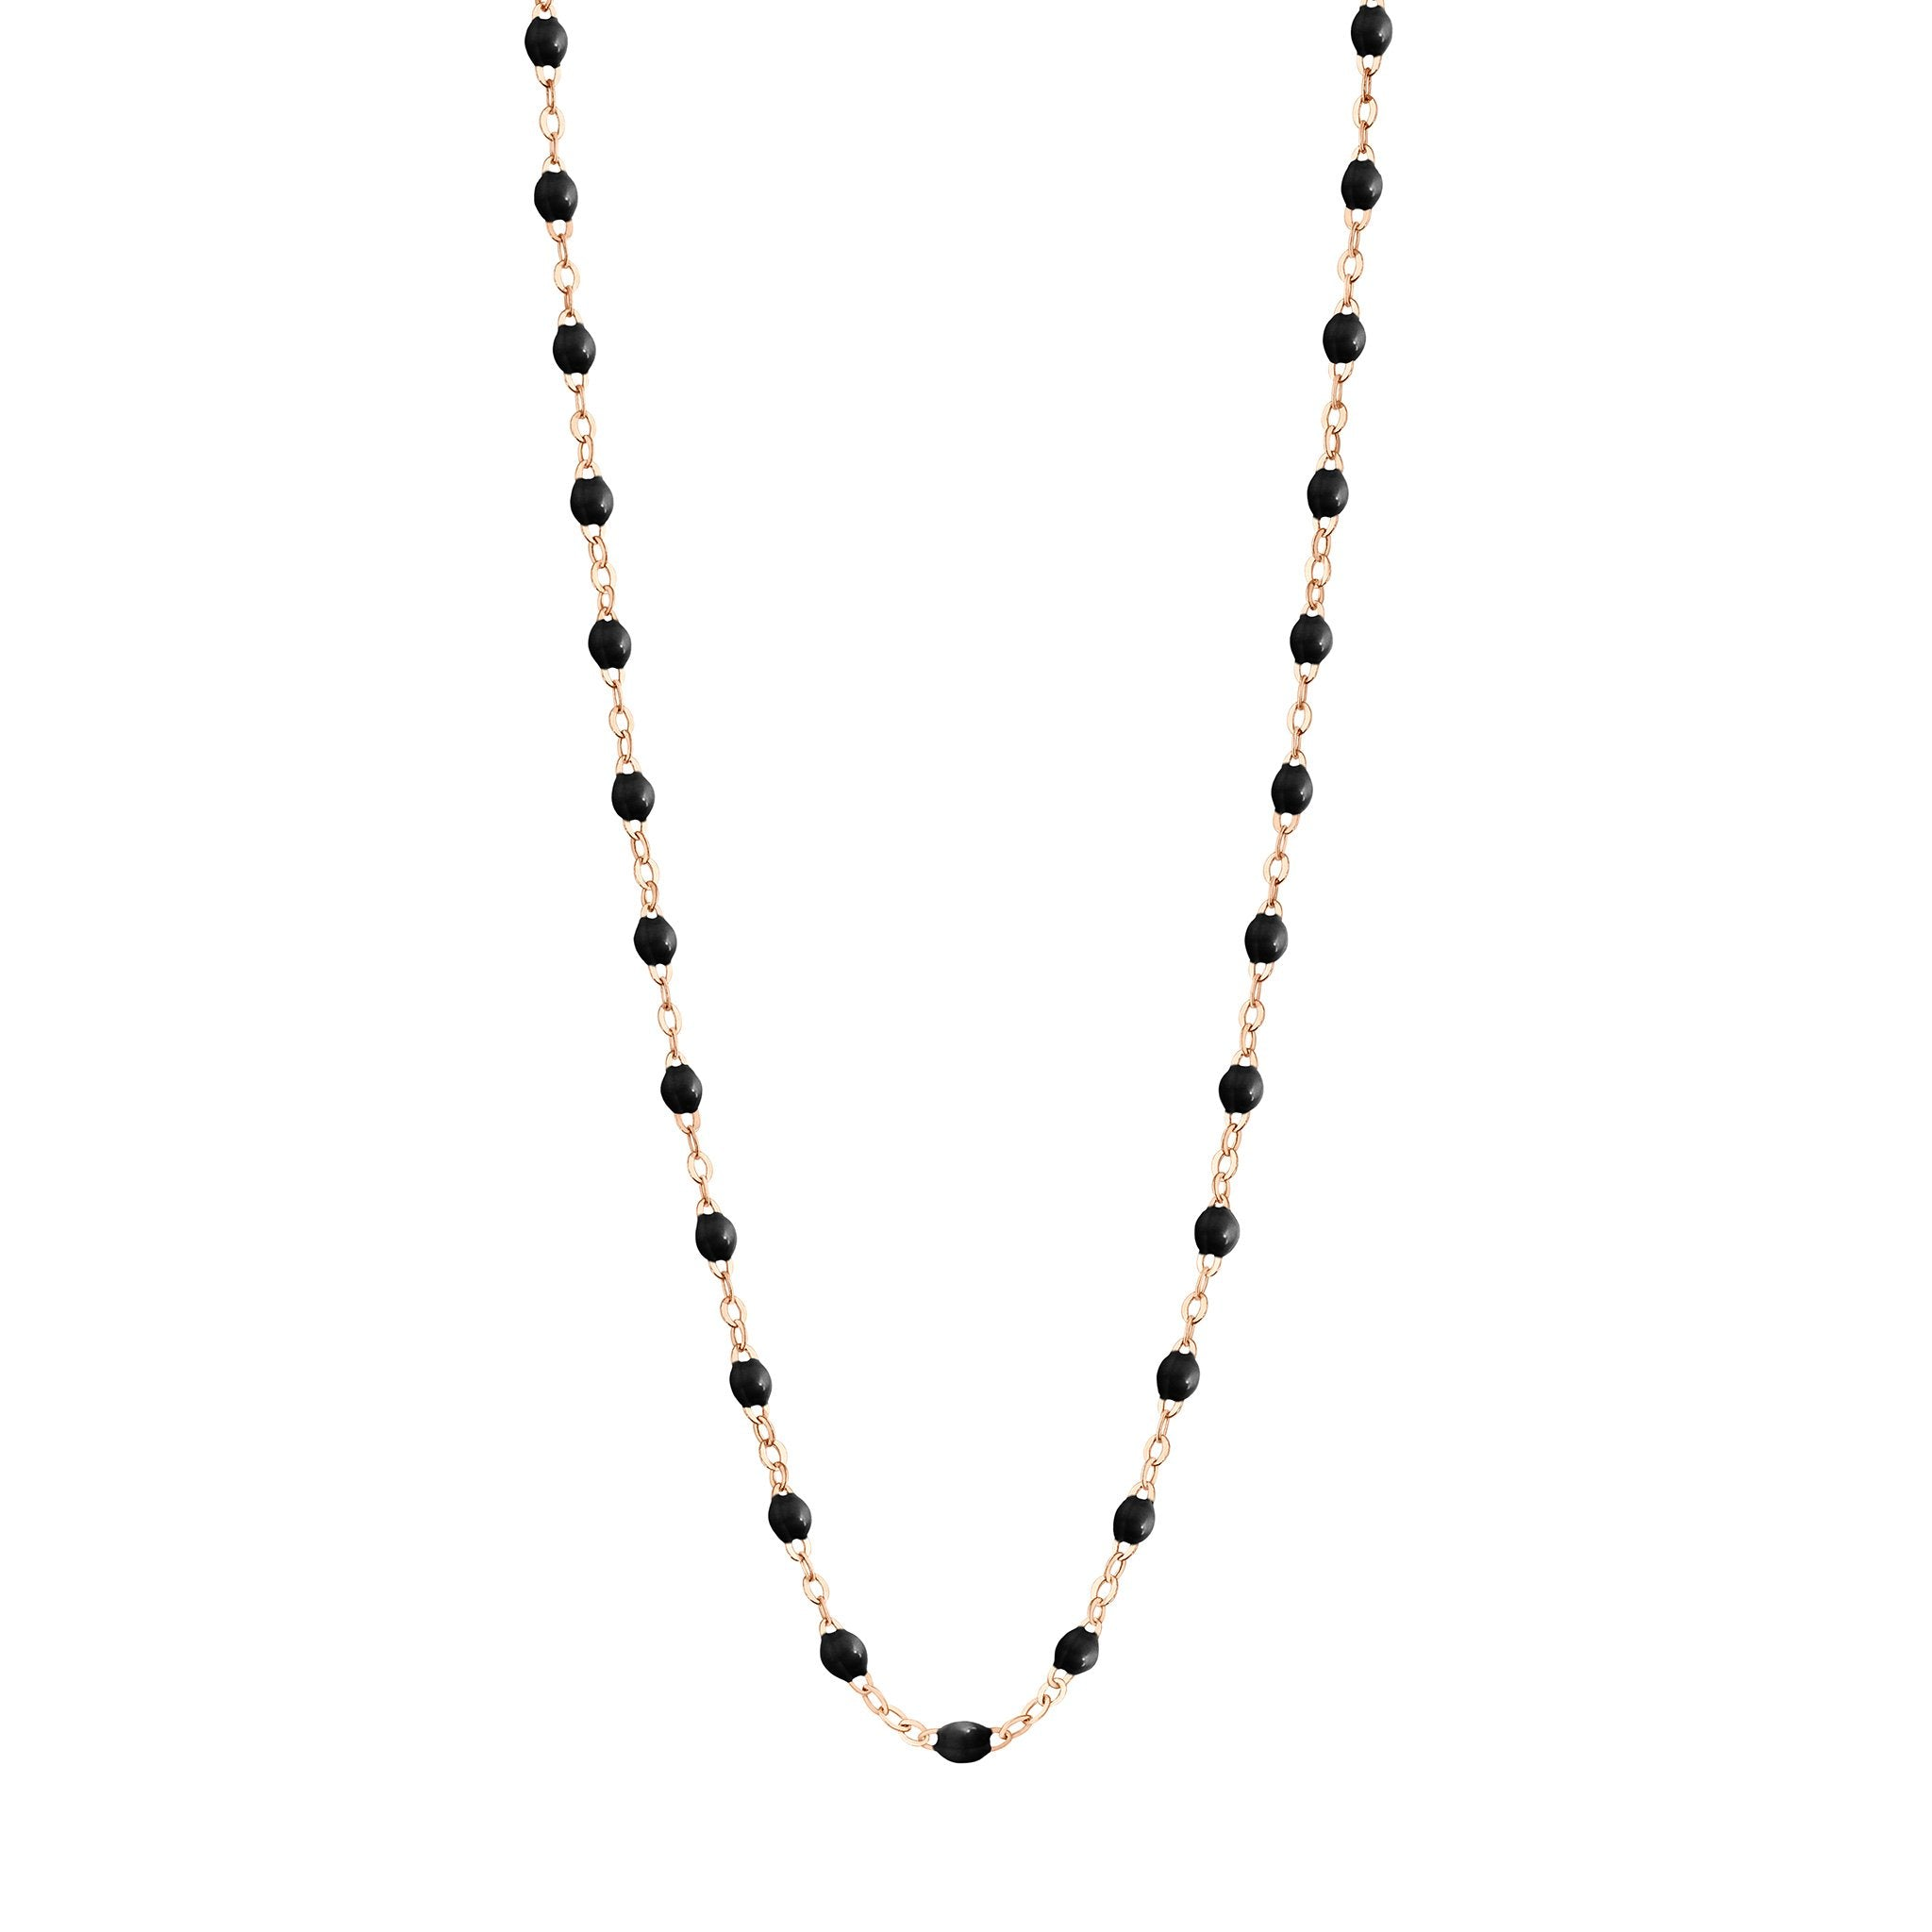 Gigi Clozeau - Classic Gigi Black necklace, Rose Gold, 16.5""